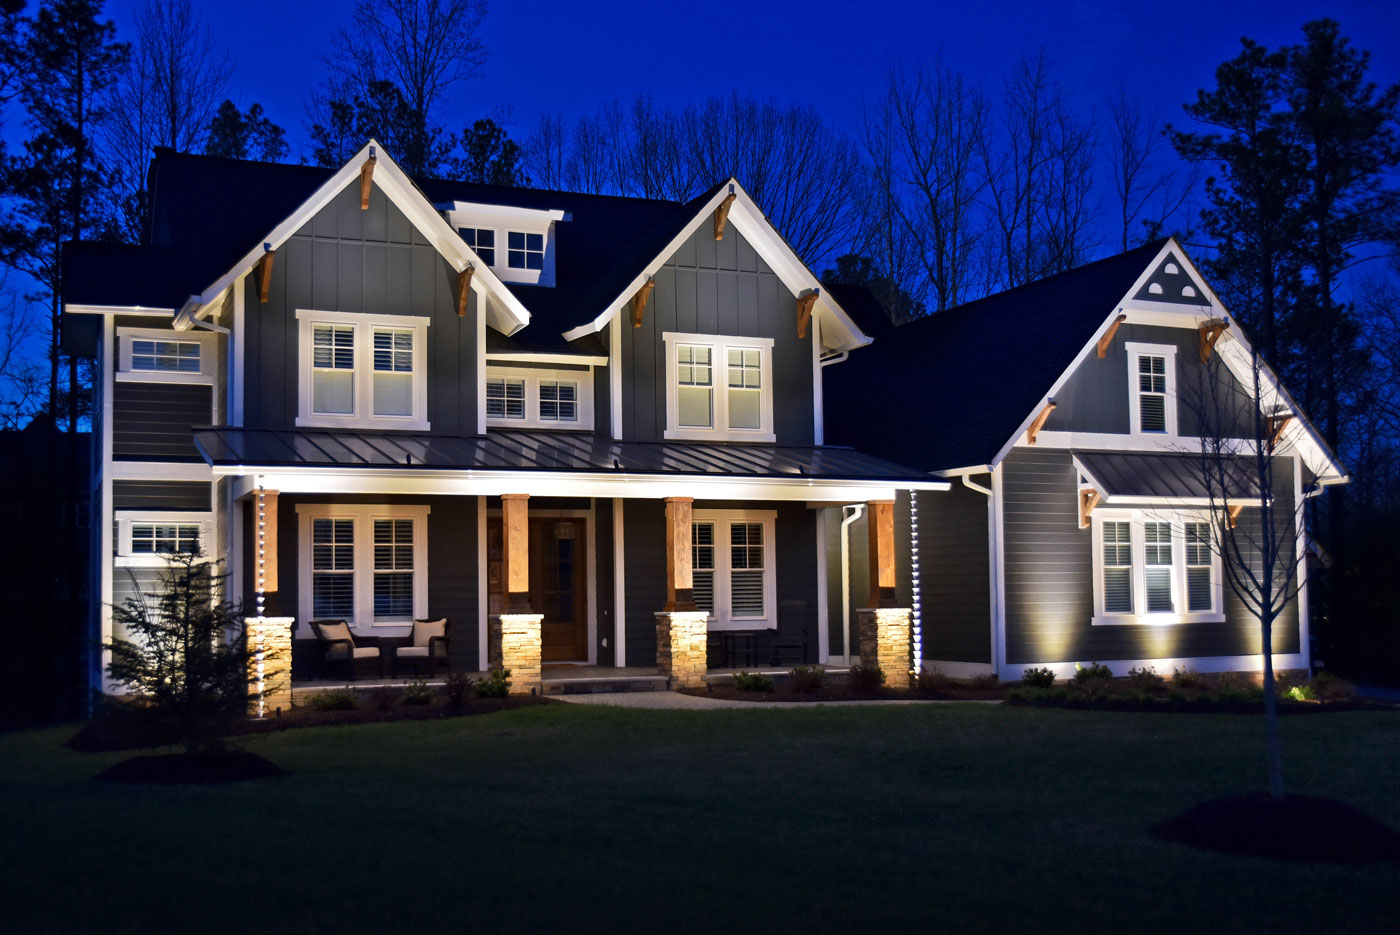 Simpsonville Residential Outdoor Lights